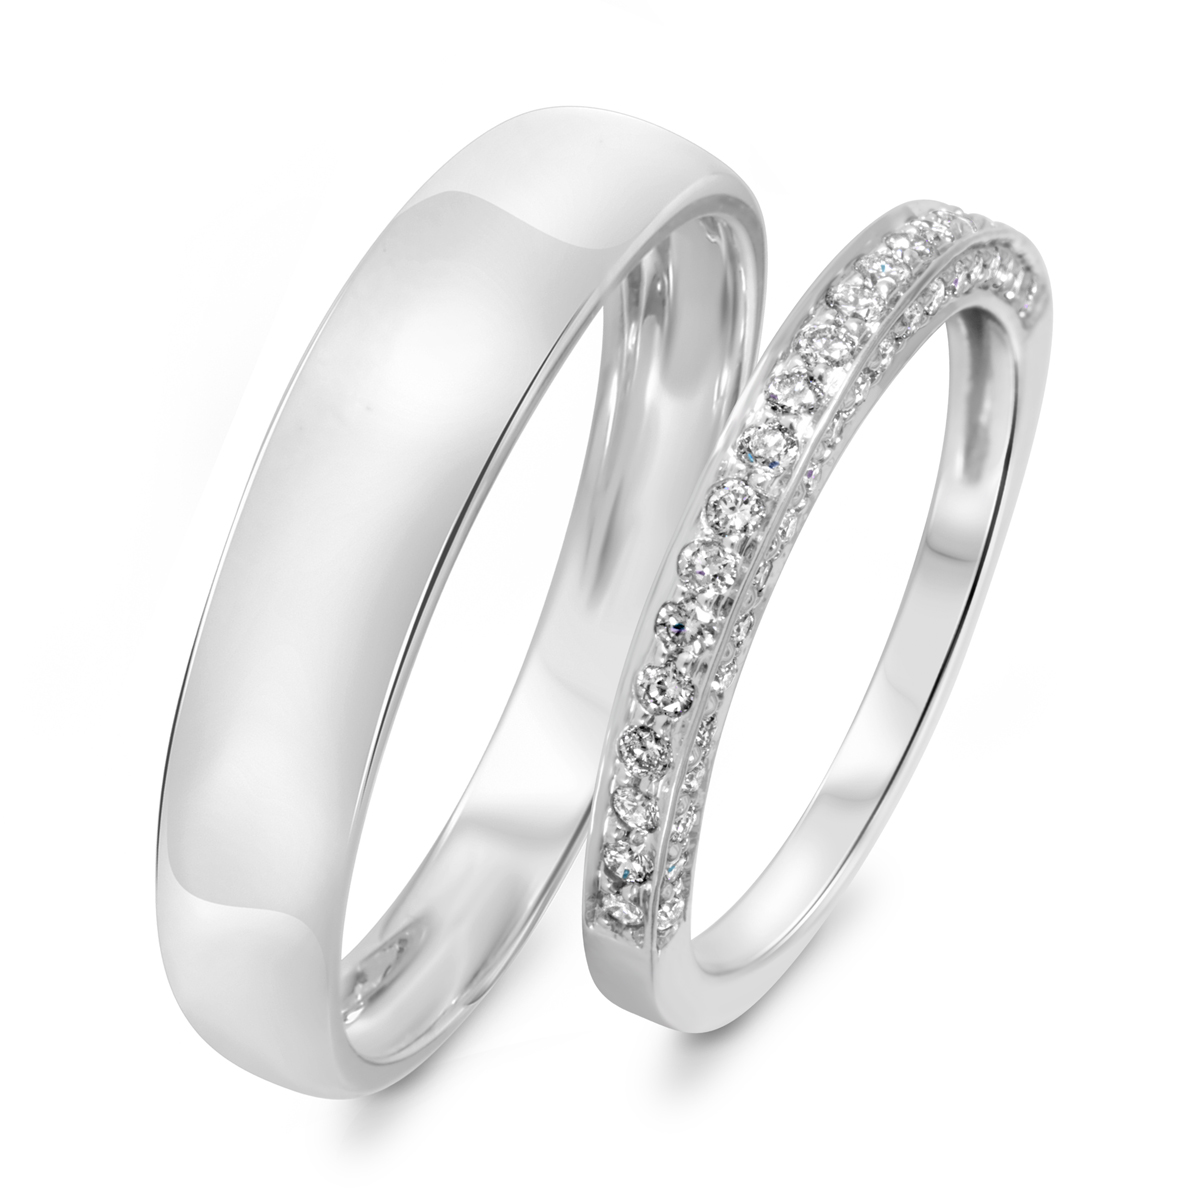 3/8 Carat T.W. Round Cut Diamond His And Hers Wedding Band Set 14K White Gold-